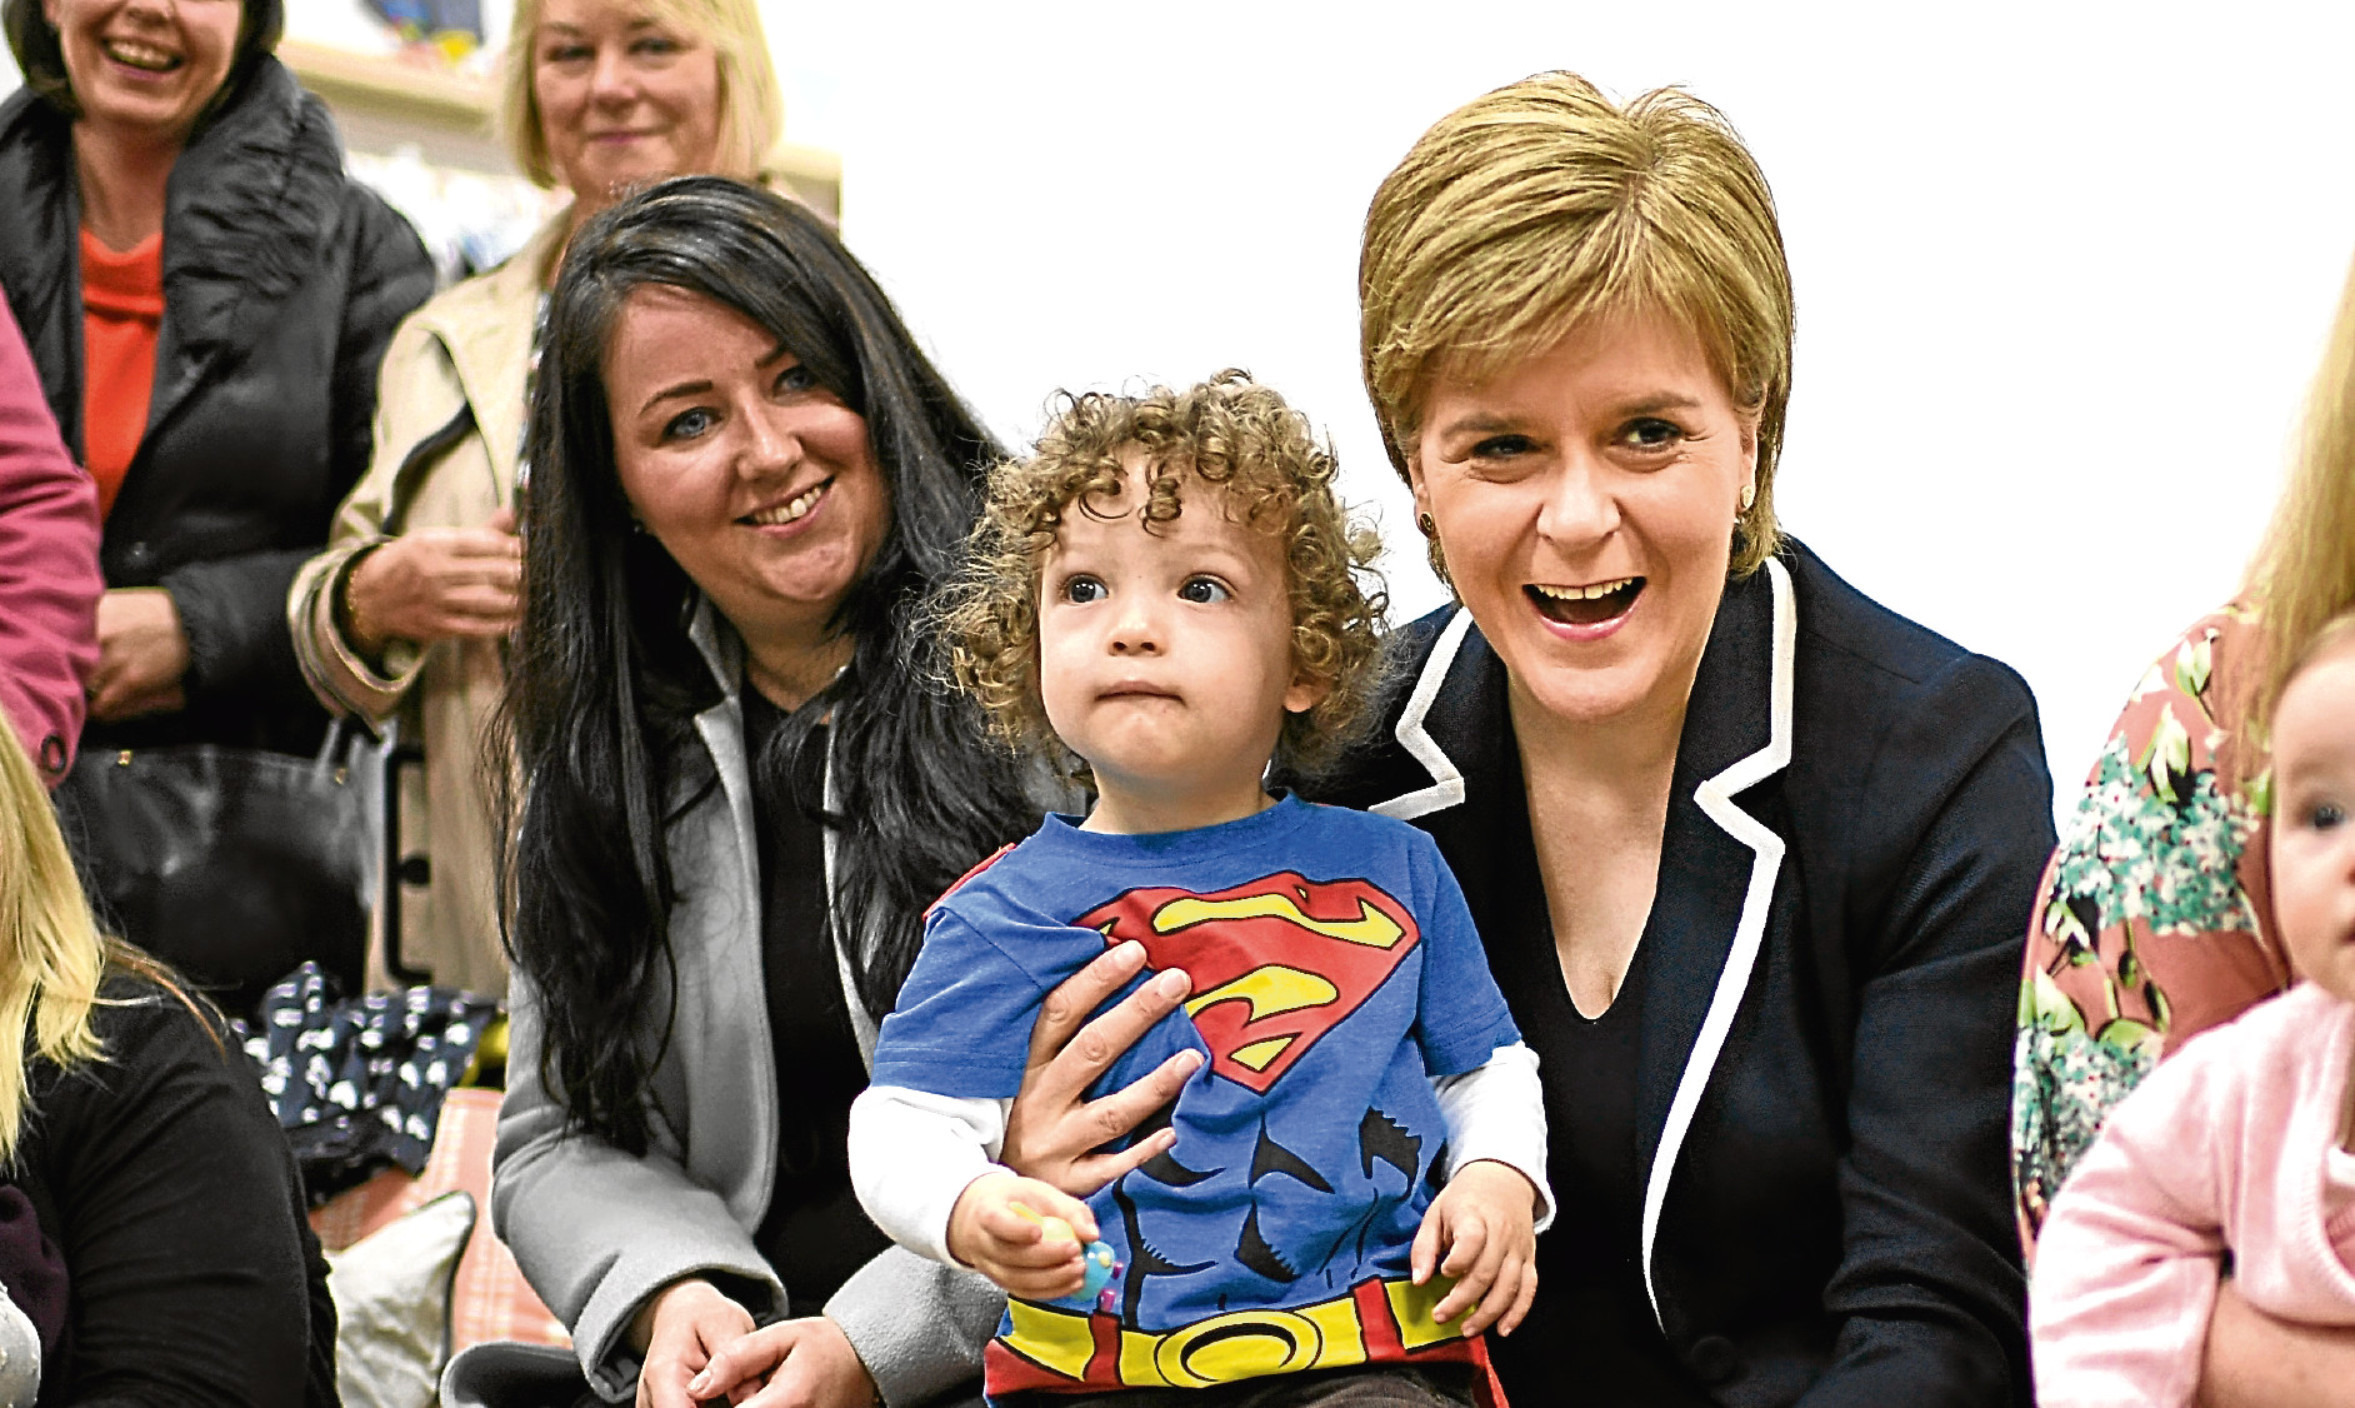 Nicola Sturgeon campaigning in Hamilton with candidate and sitting MP Angela Crawley. Is this visit to a safe seat a sign of worries in the SNP camp, Jenny wonders.